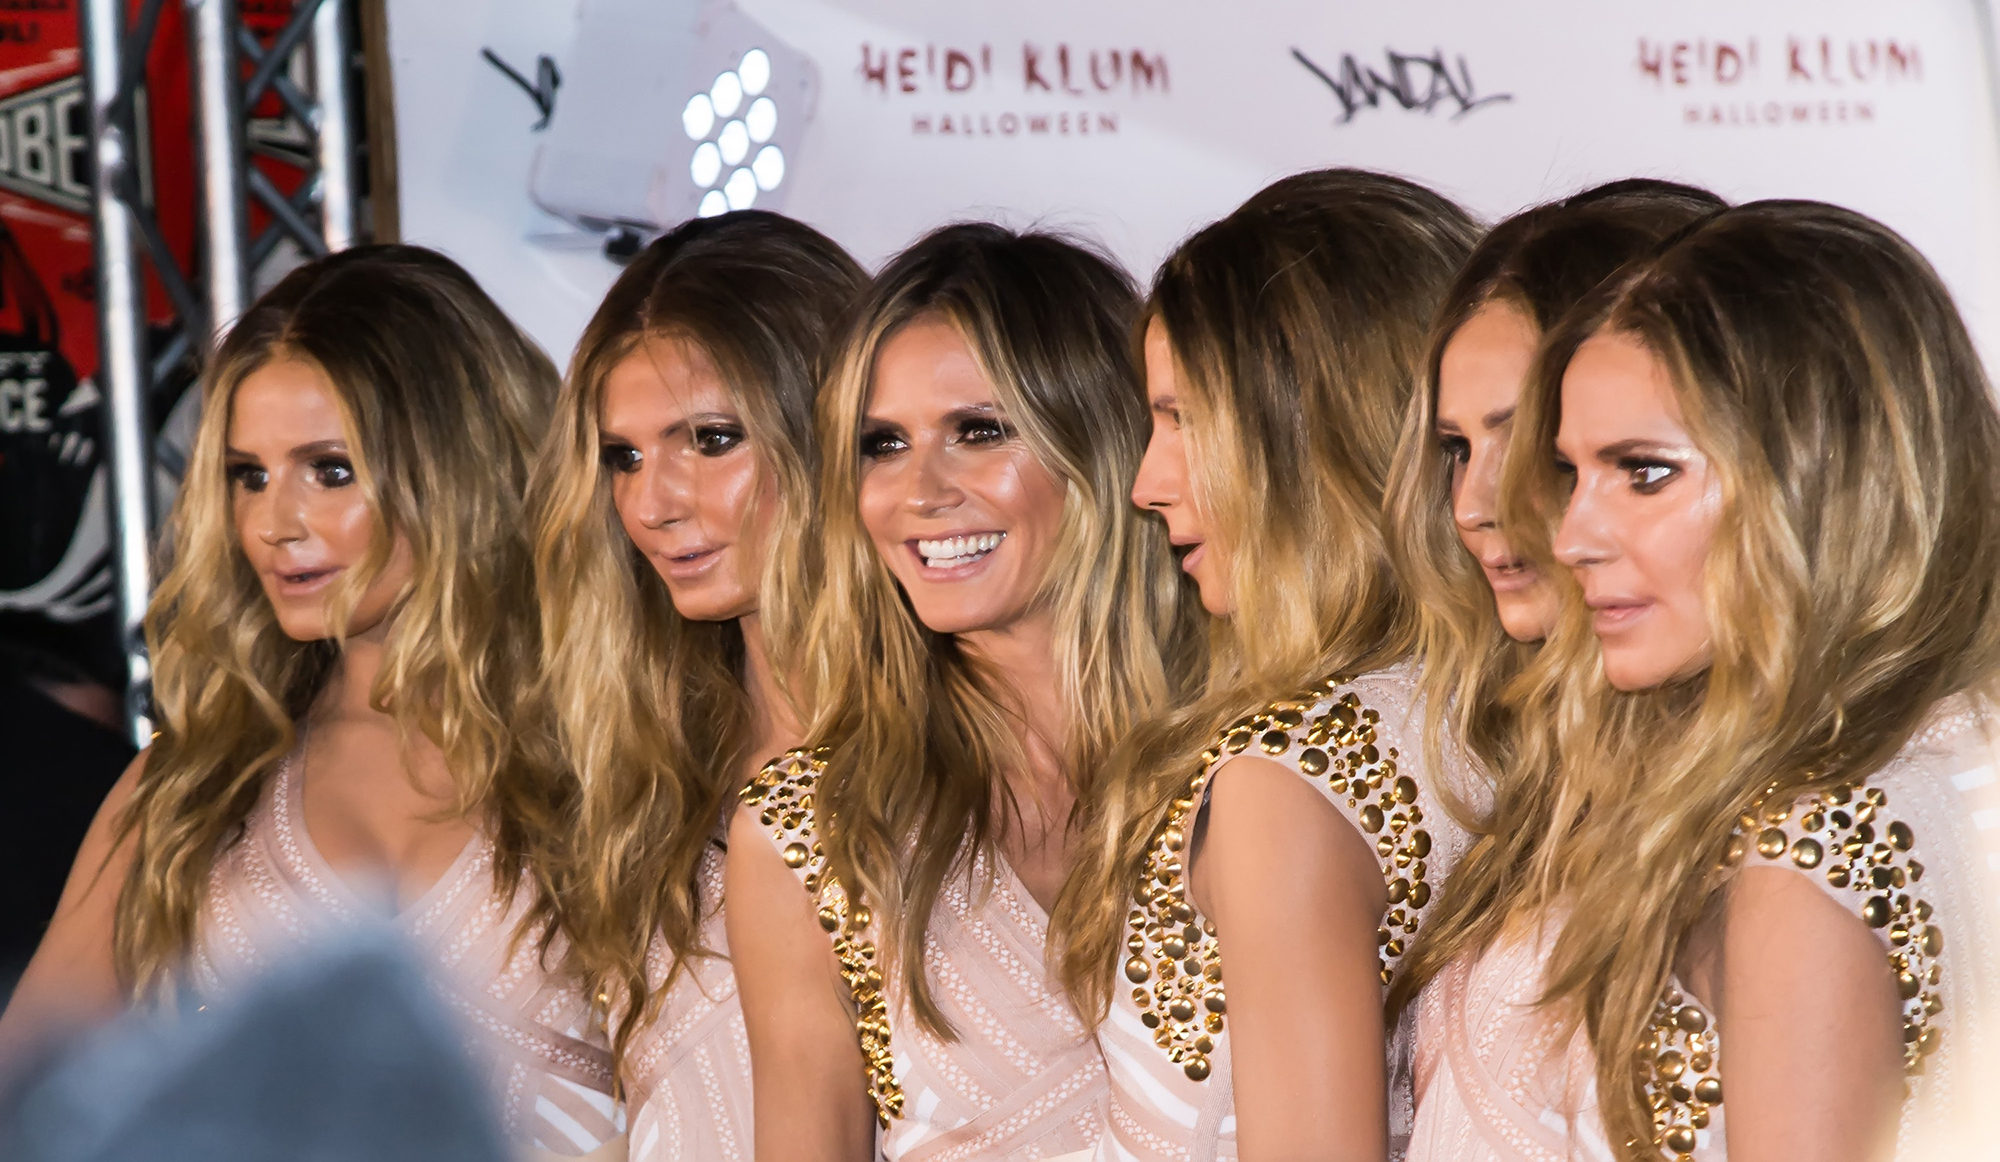 Heidi Klum (3rd L) is seen arriving at Heidi Klum's 17th Annual Halloween Party at Vandal on October 31, 2016 in New York City.  (Photo by Gilbert Carrasquillo/FilmMagic)